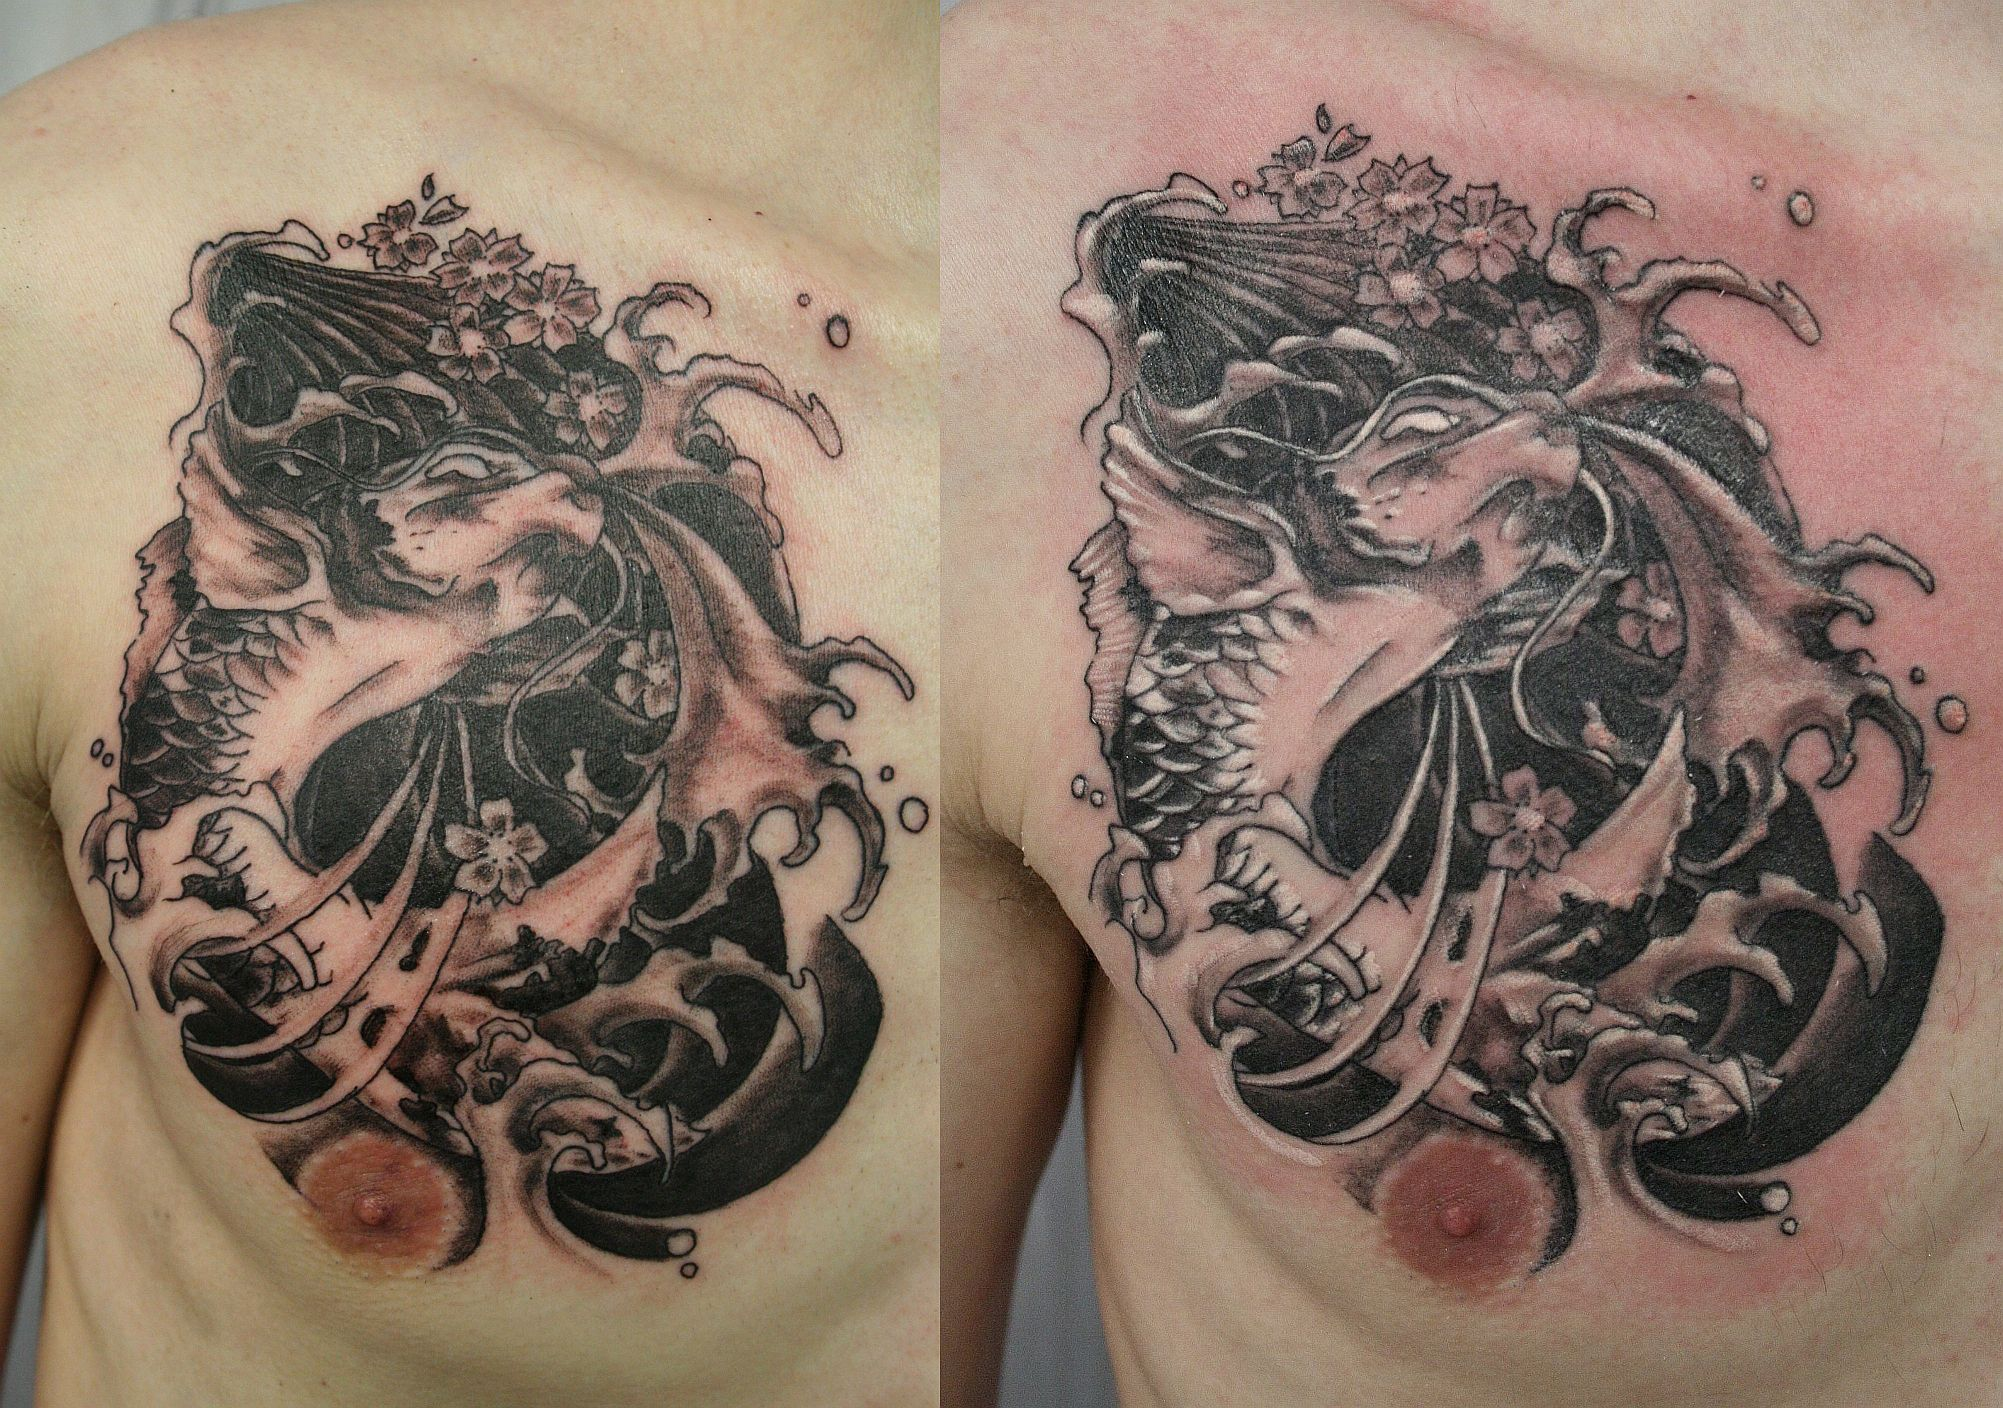 Amazing Japanese Tattoo Designs Especially Japanese Koi Fish Tattoo Picture 10